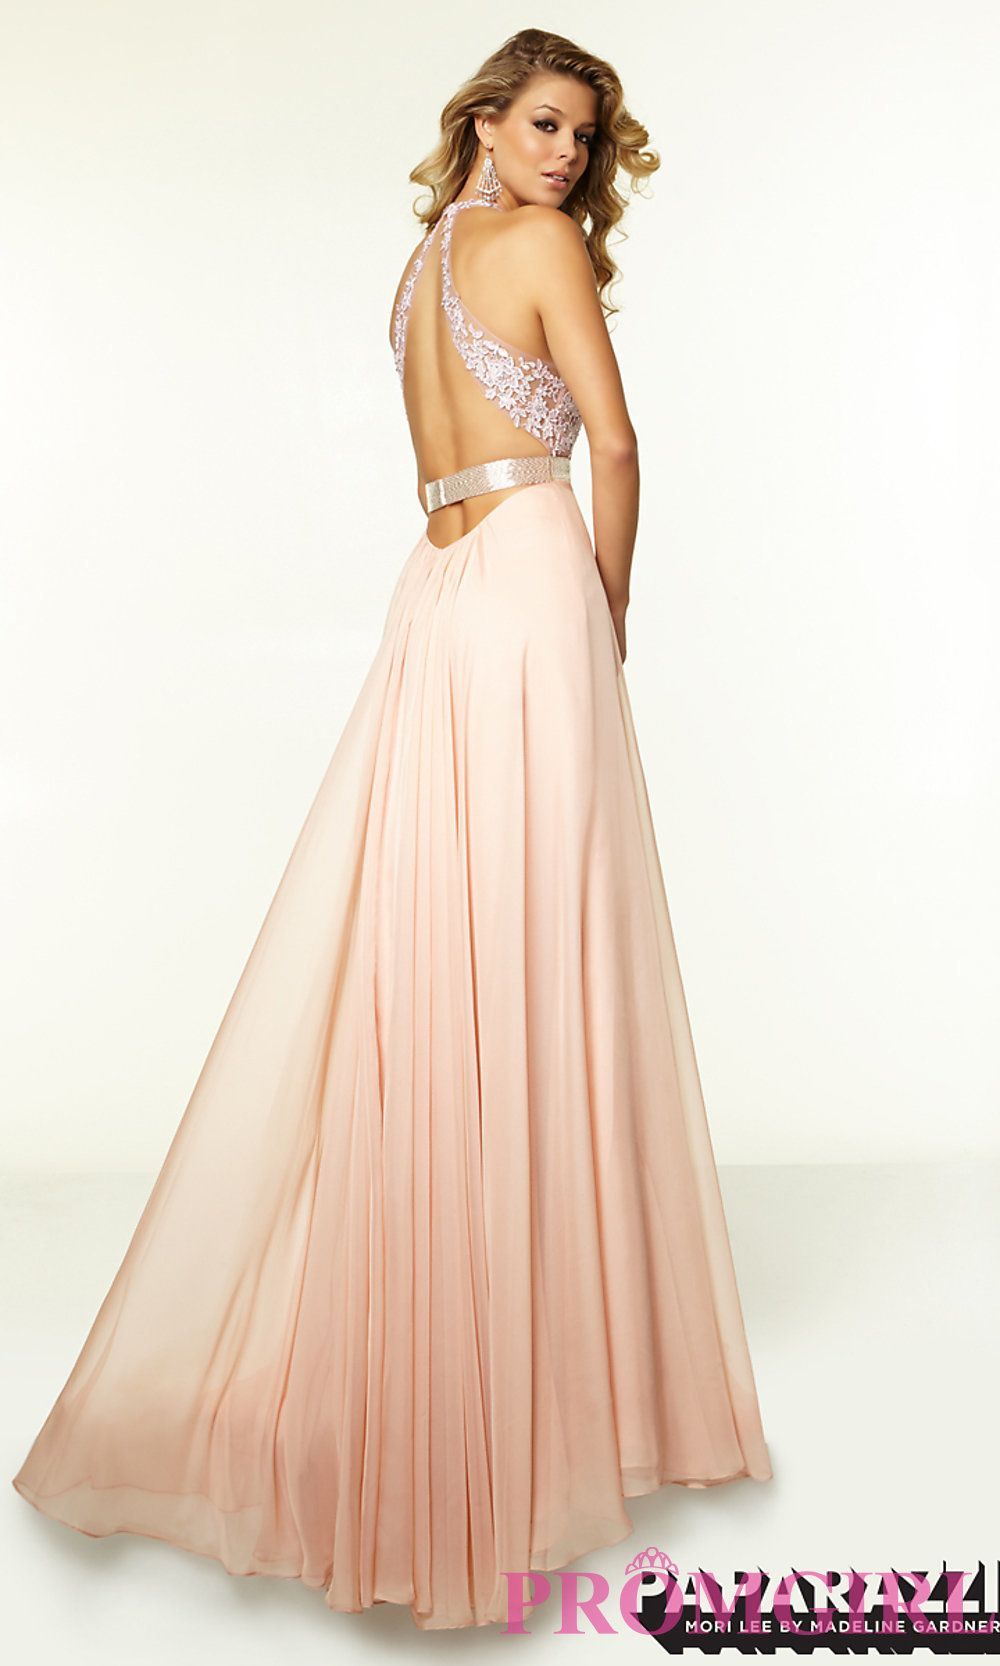 Image of mori lee long v neck prom gown ml 97018 style ml 97018 image of mori lee long v neck prom gown ml 97018 style ml ombrellifo Choice Image